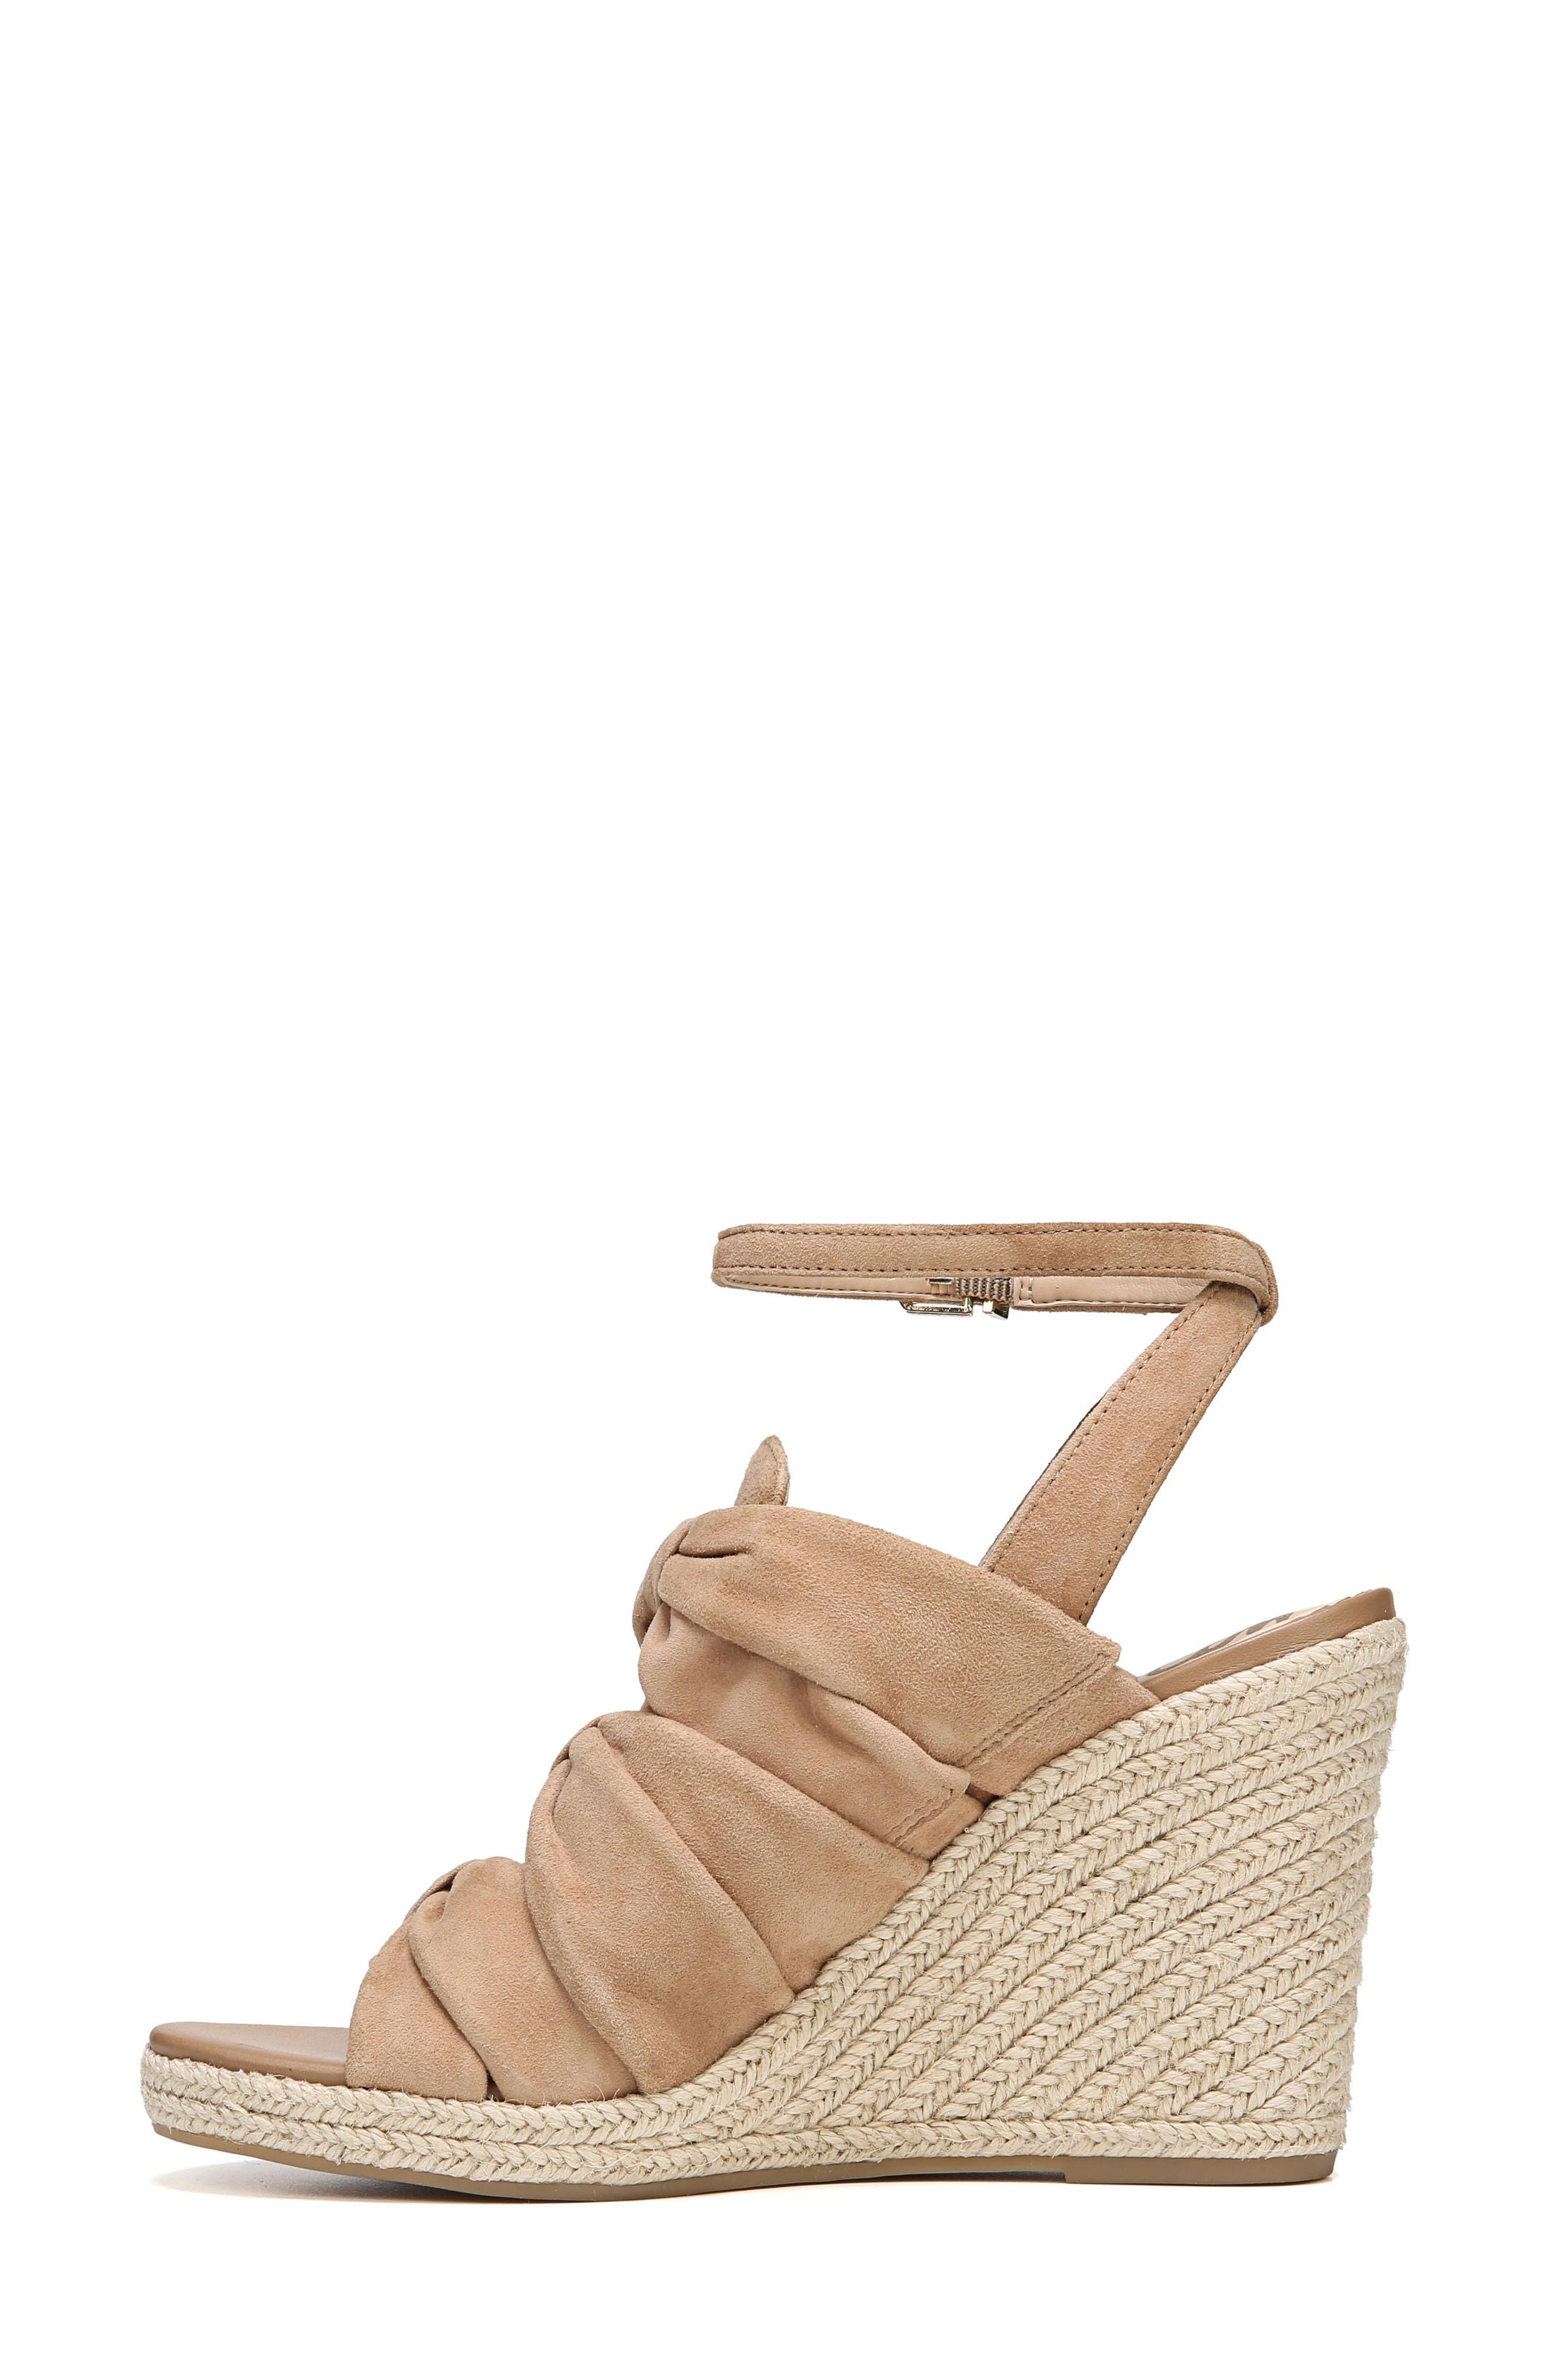 Awan Cinched Wedge Sandal,                             Alternate thumbnail 6, color,